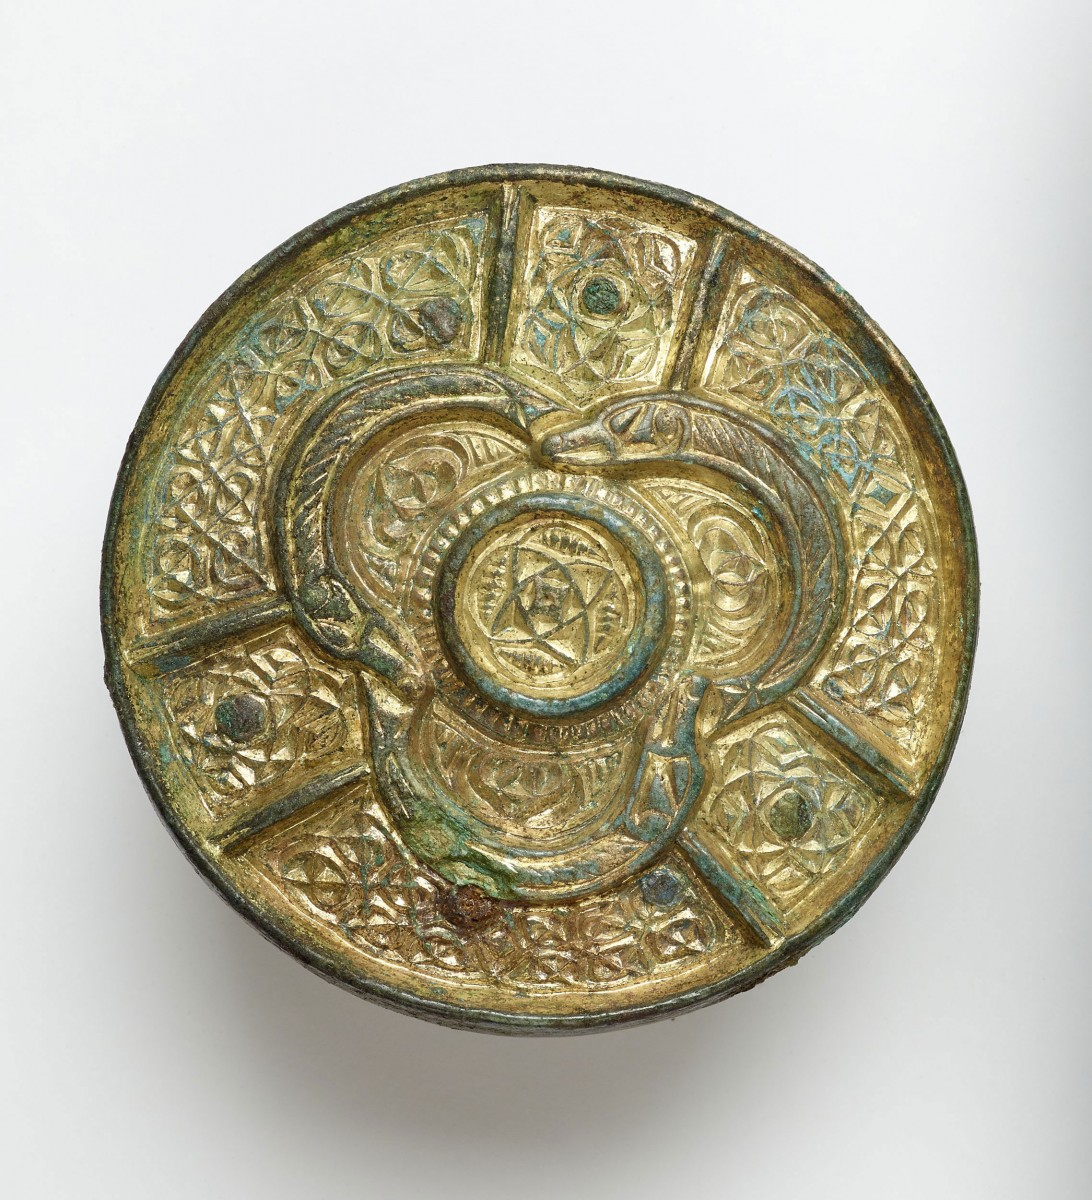 Irish or Scottish Brooch found in 9th-10th century grave in Lilleberge, Norway. Photo Credit: The History Blog.